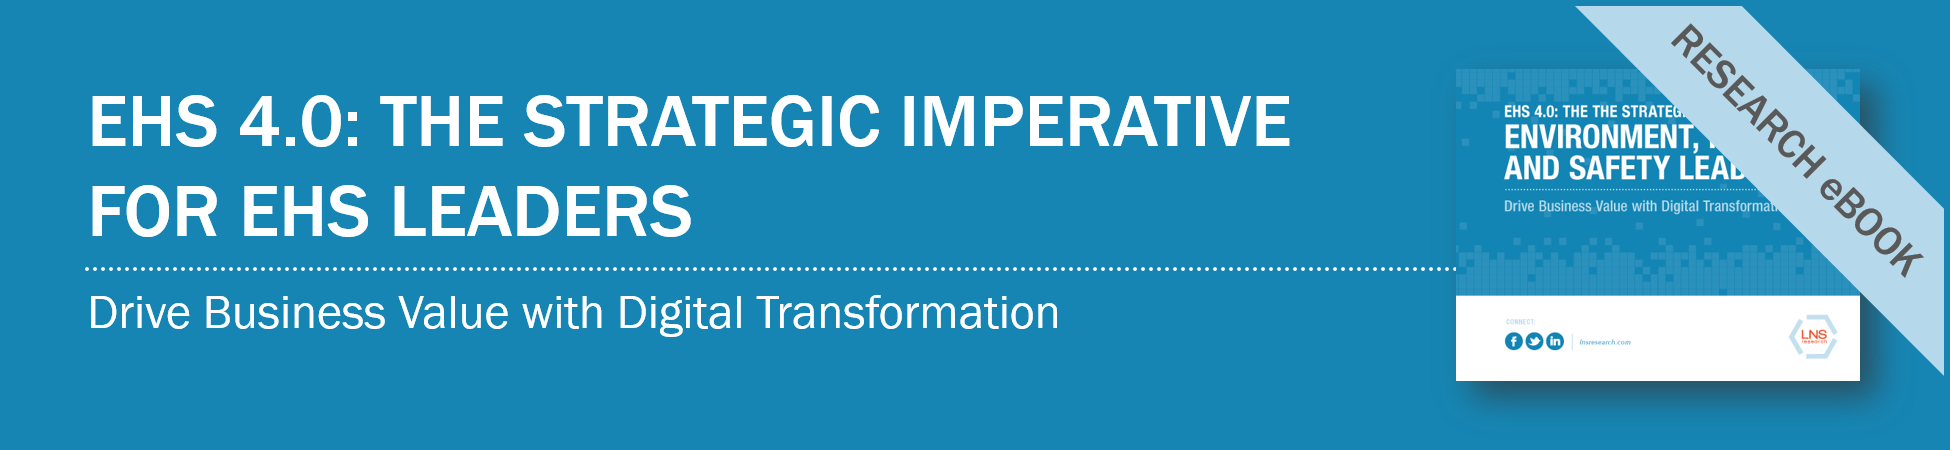 EHS 4.0: The Strategic Imperative for EHS Leaders